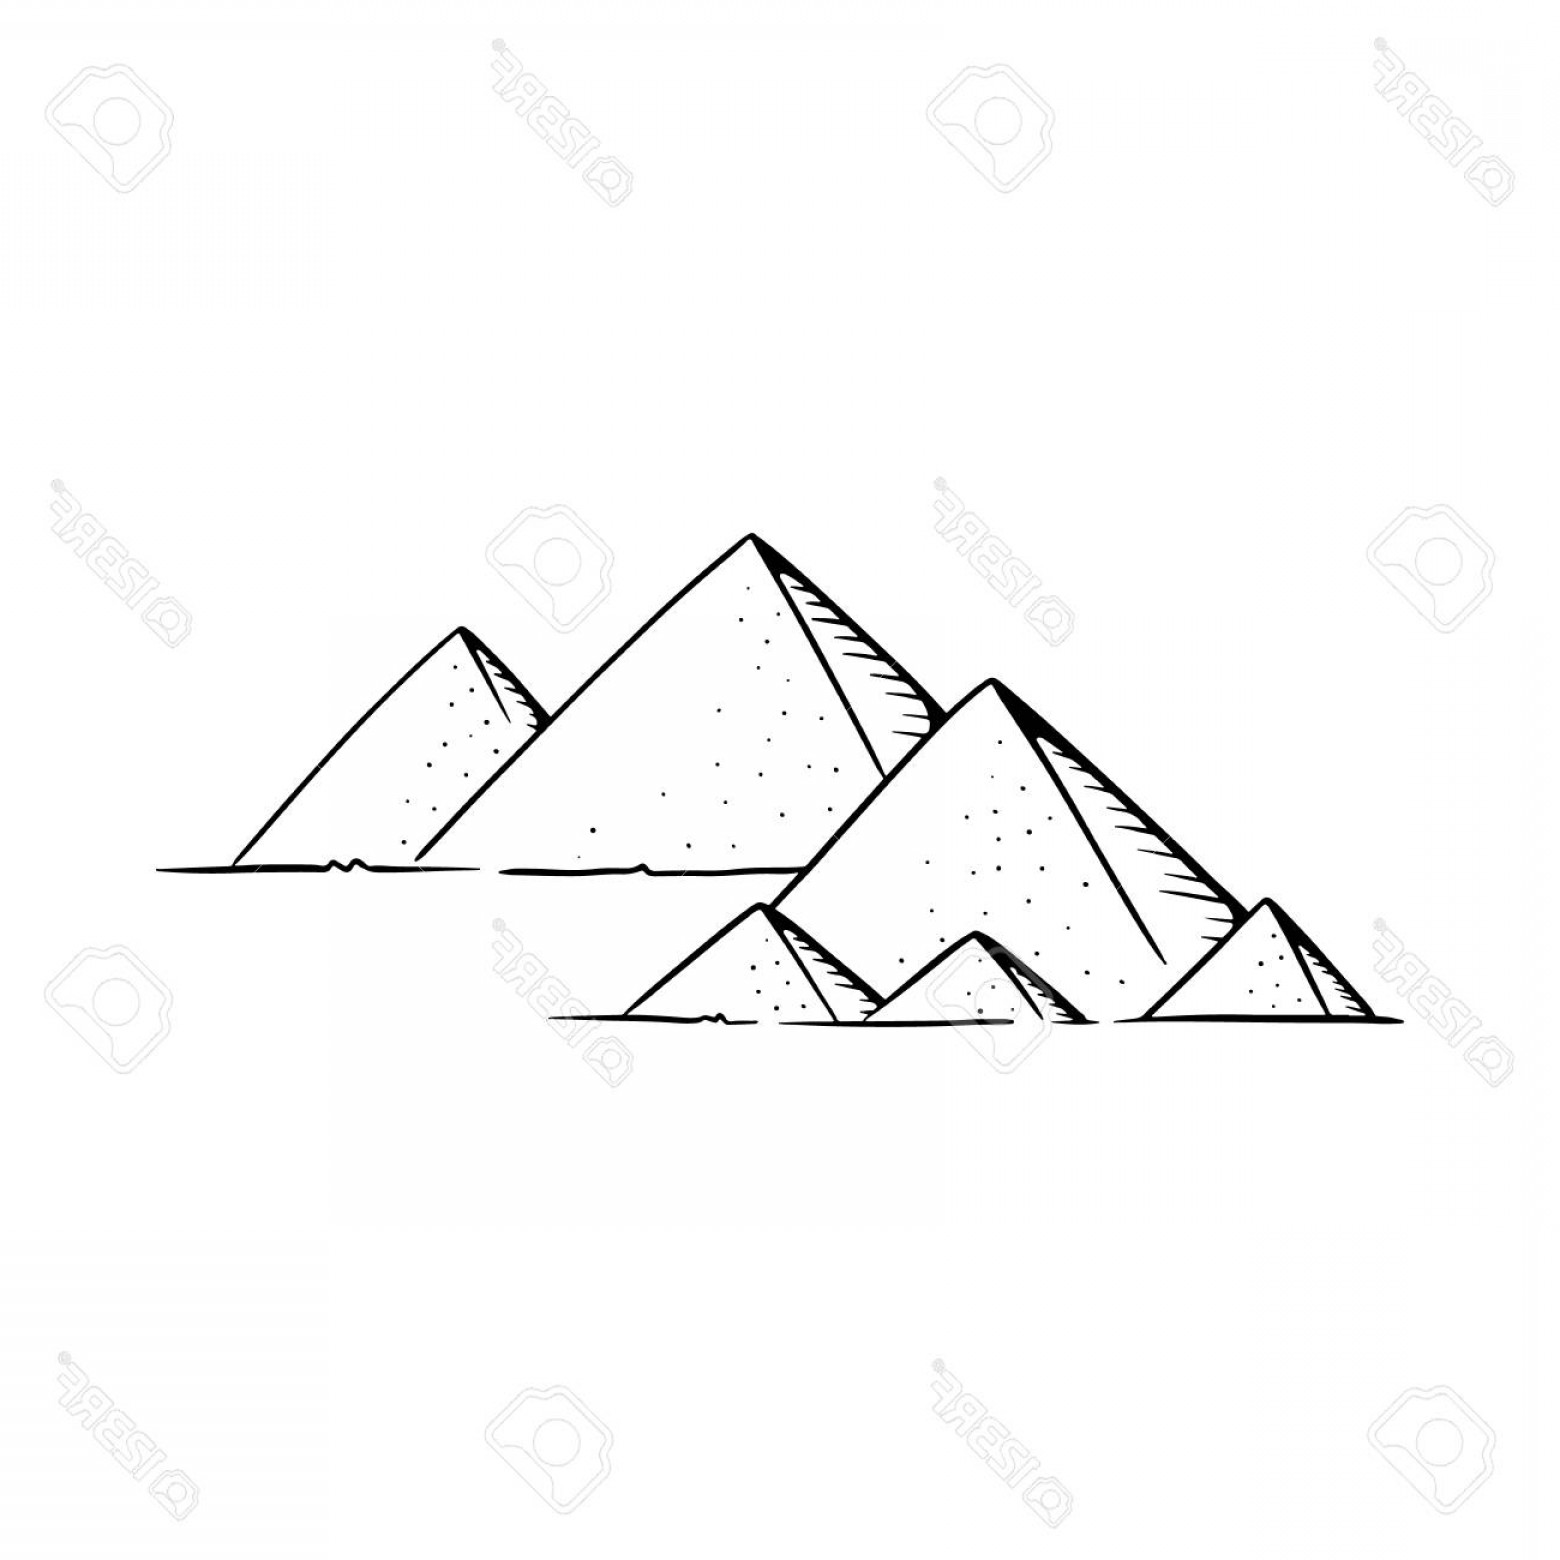 Piramids Vector Art: Photostock Vector Pyramids Vector Illustration Pyramids Line Drawing